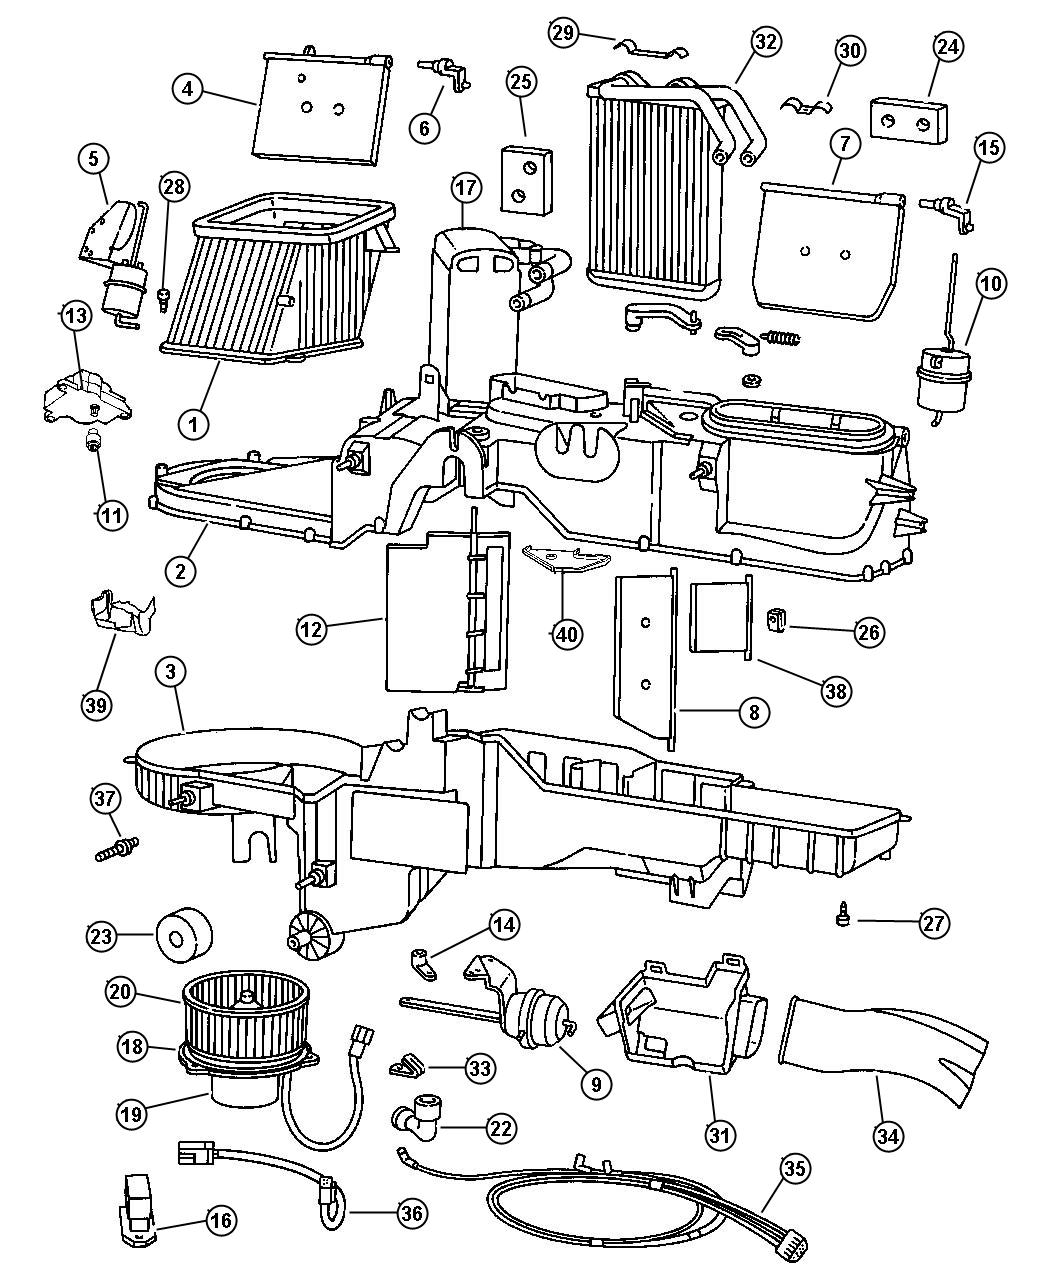 1997 dodge ram 3500 parts diagram  1997  free engine image